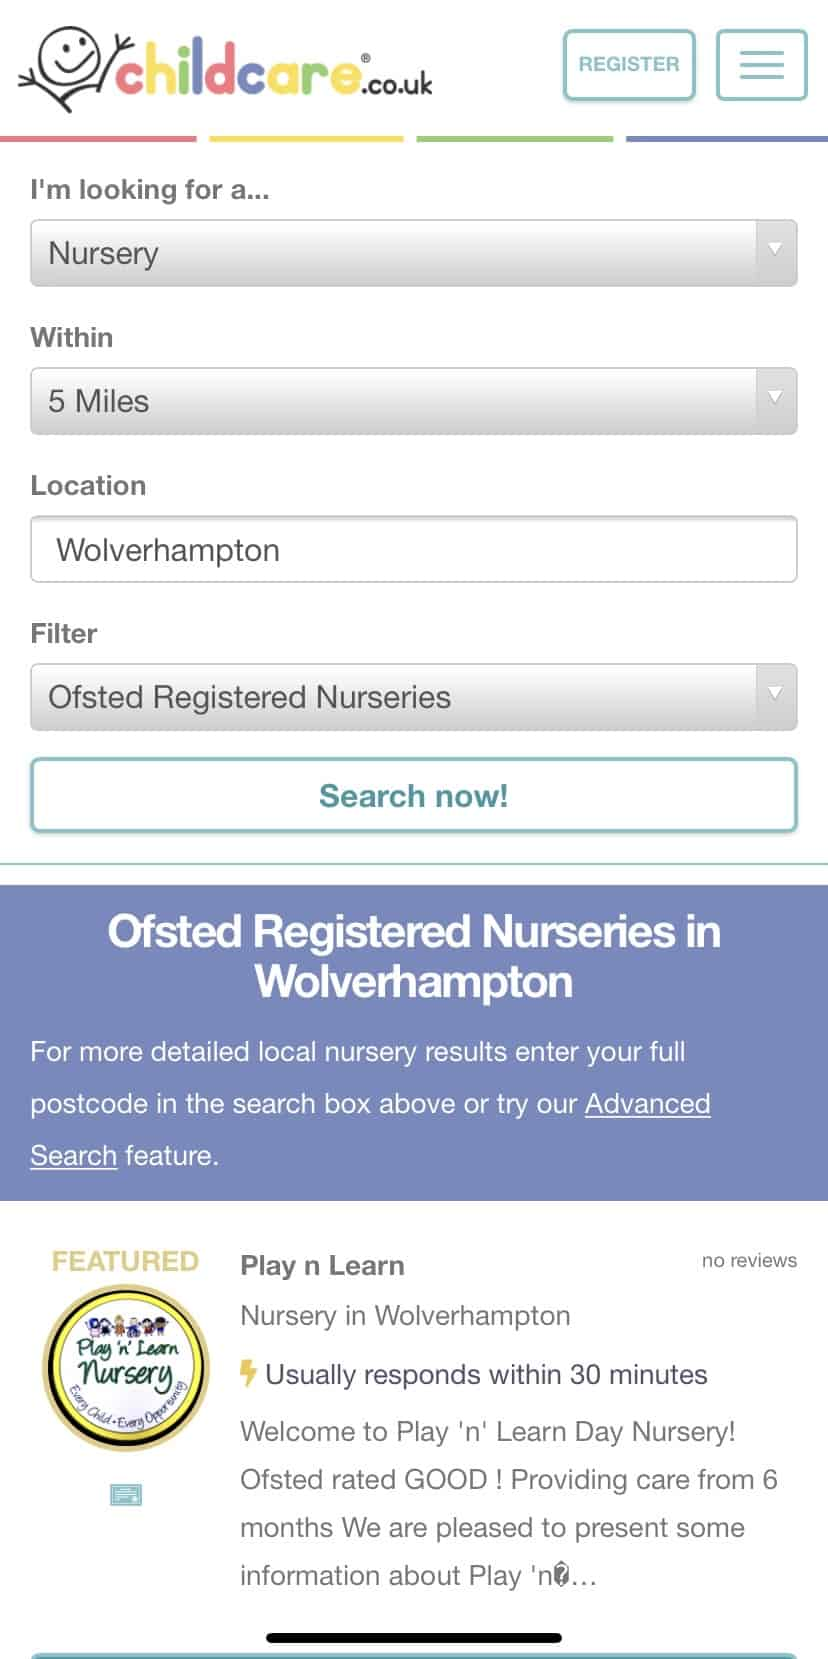 Finding a nursery using childcare.co.uk